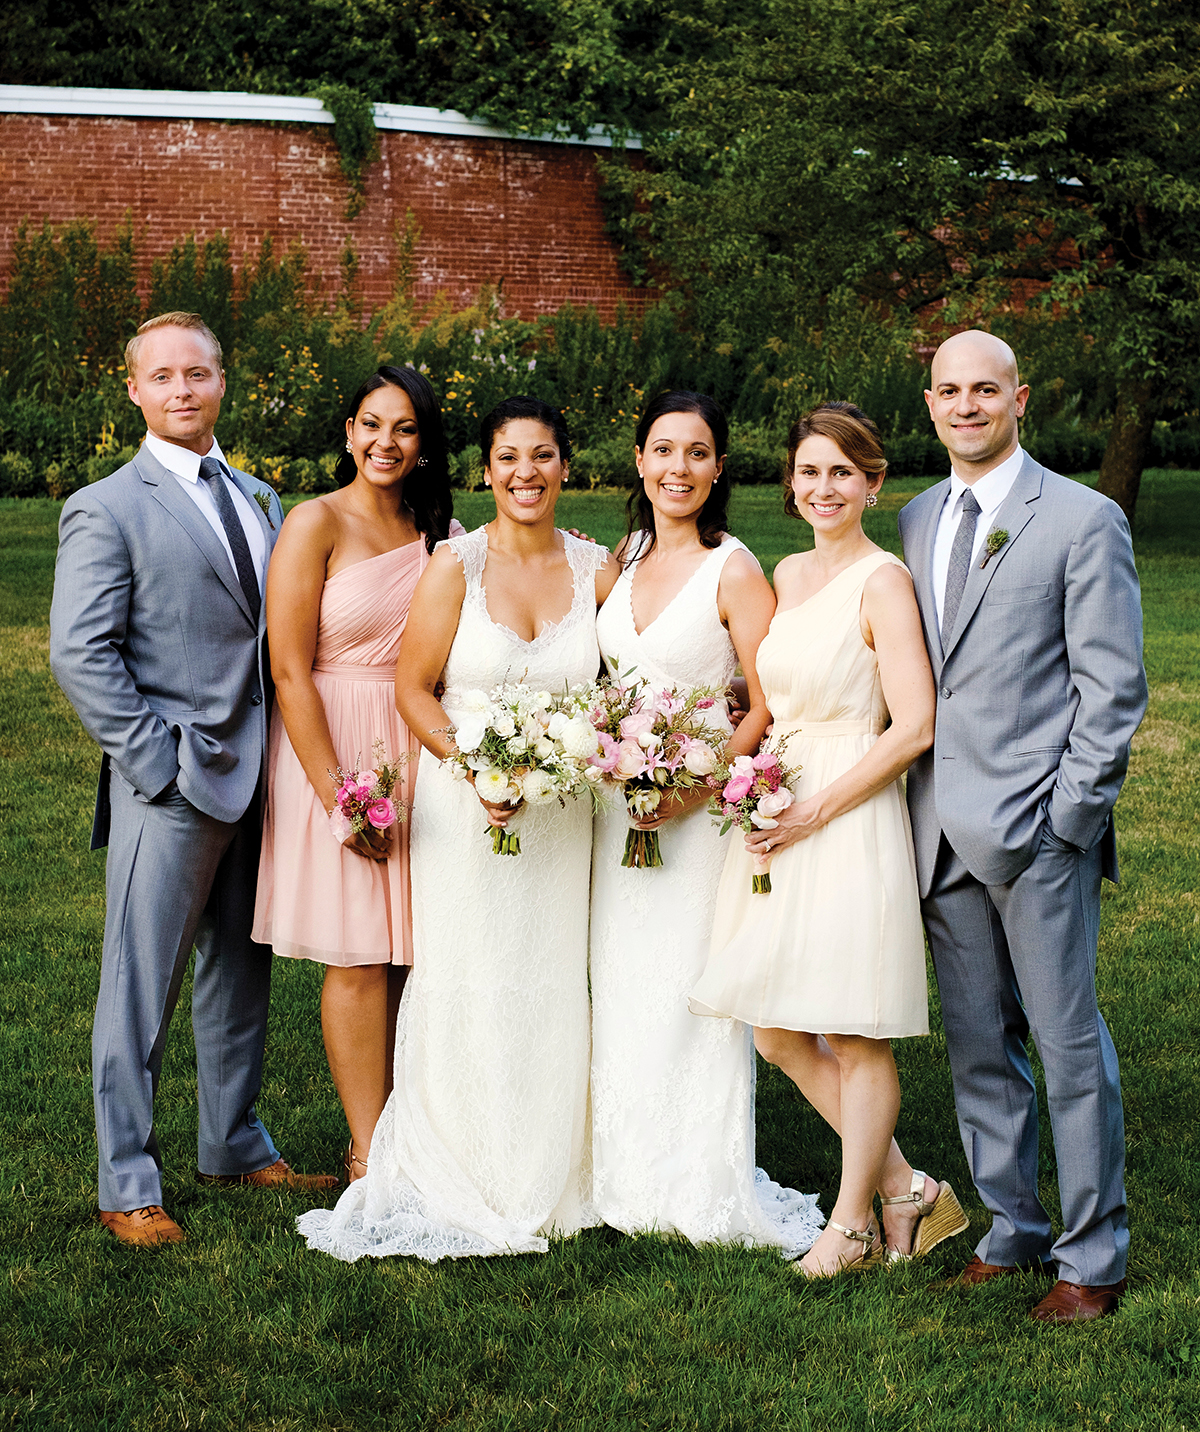 Julie Ciollo Elisse Gaynor real wedding 8